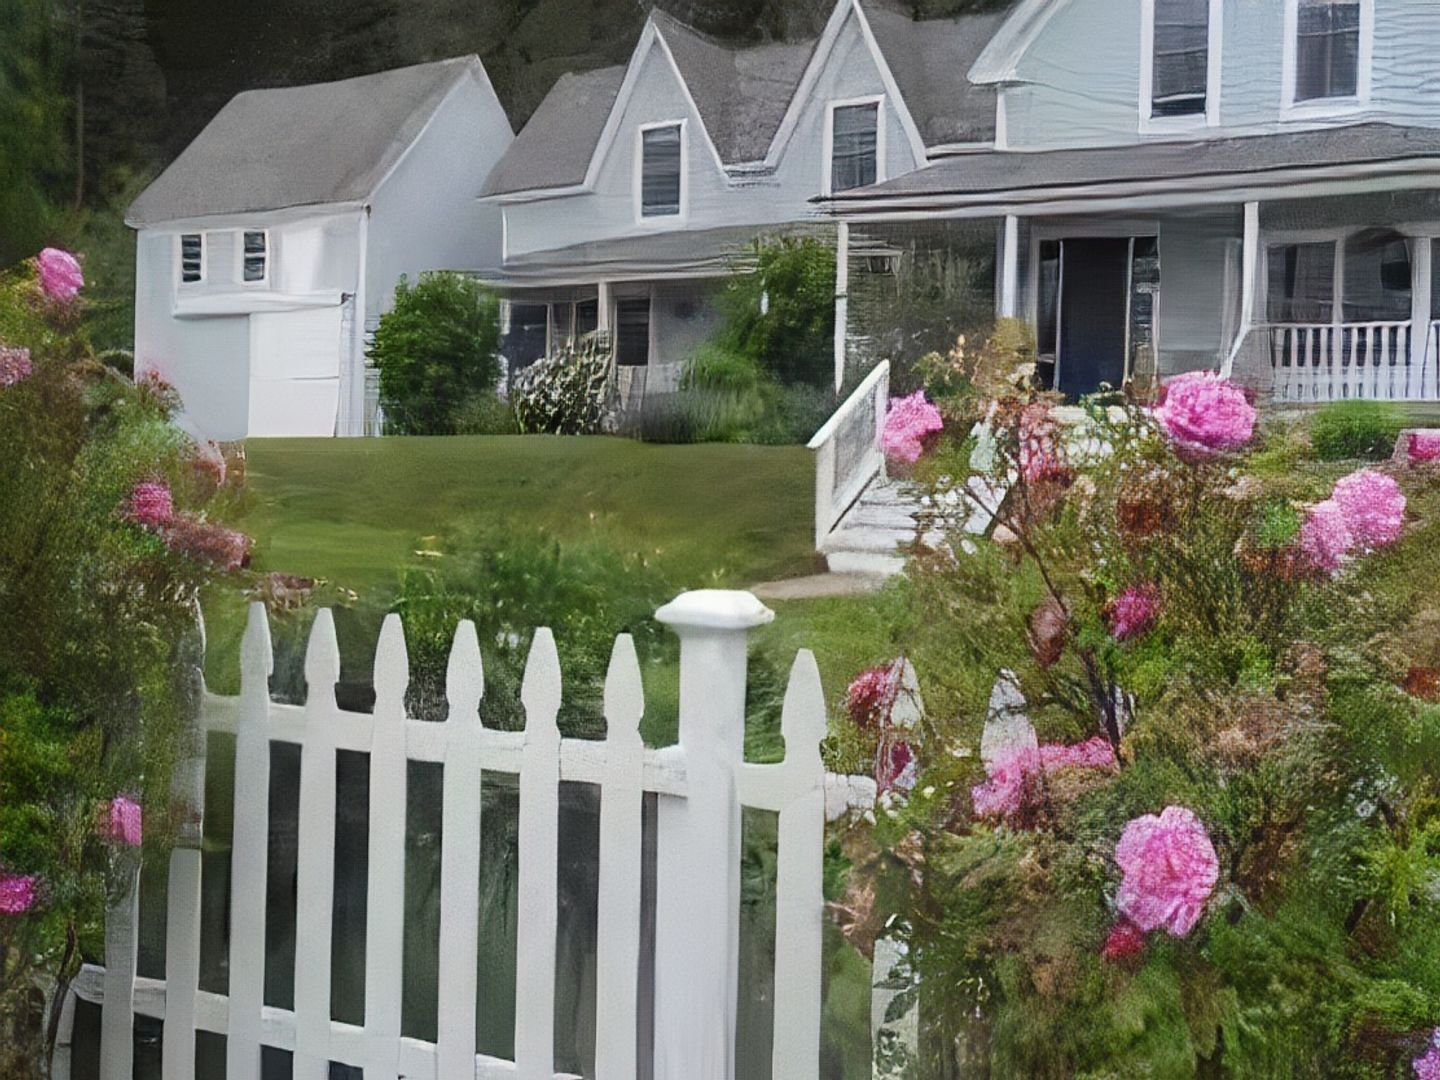 A pink flower is standing in front of a building at Elsa's Inn on the Harbor.